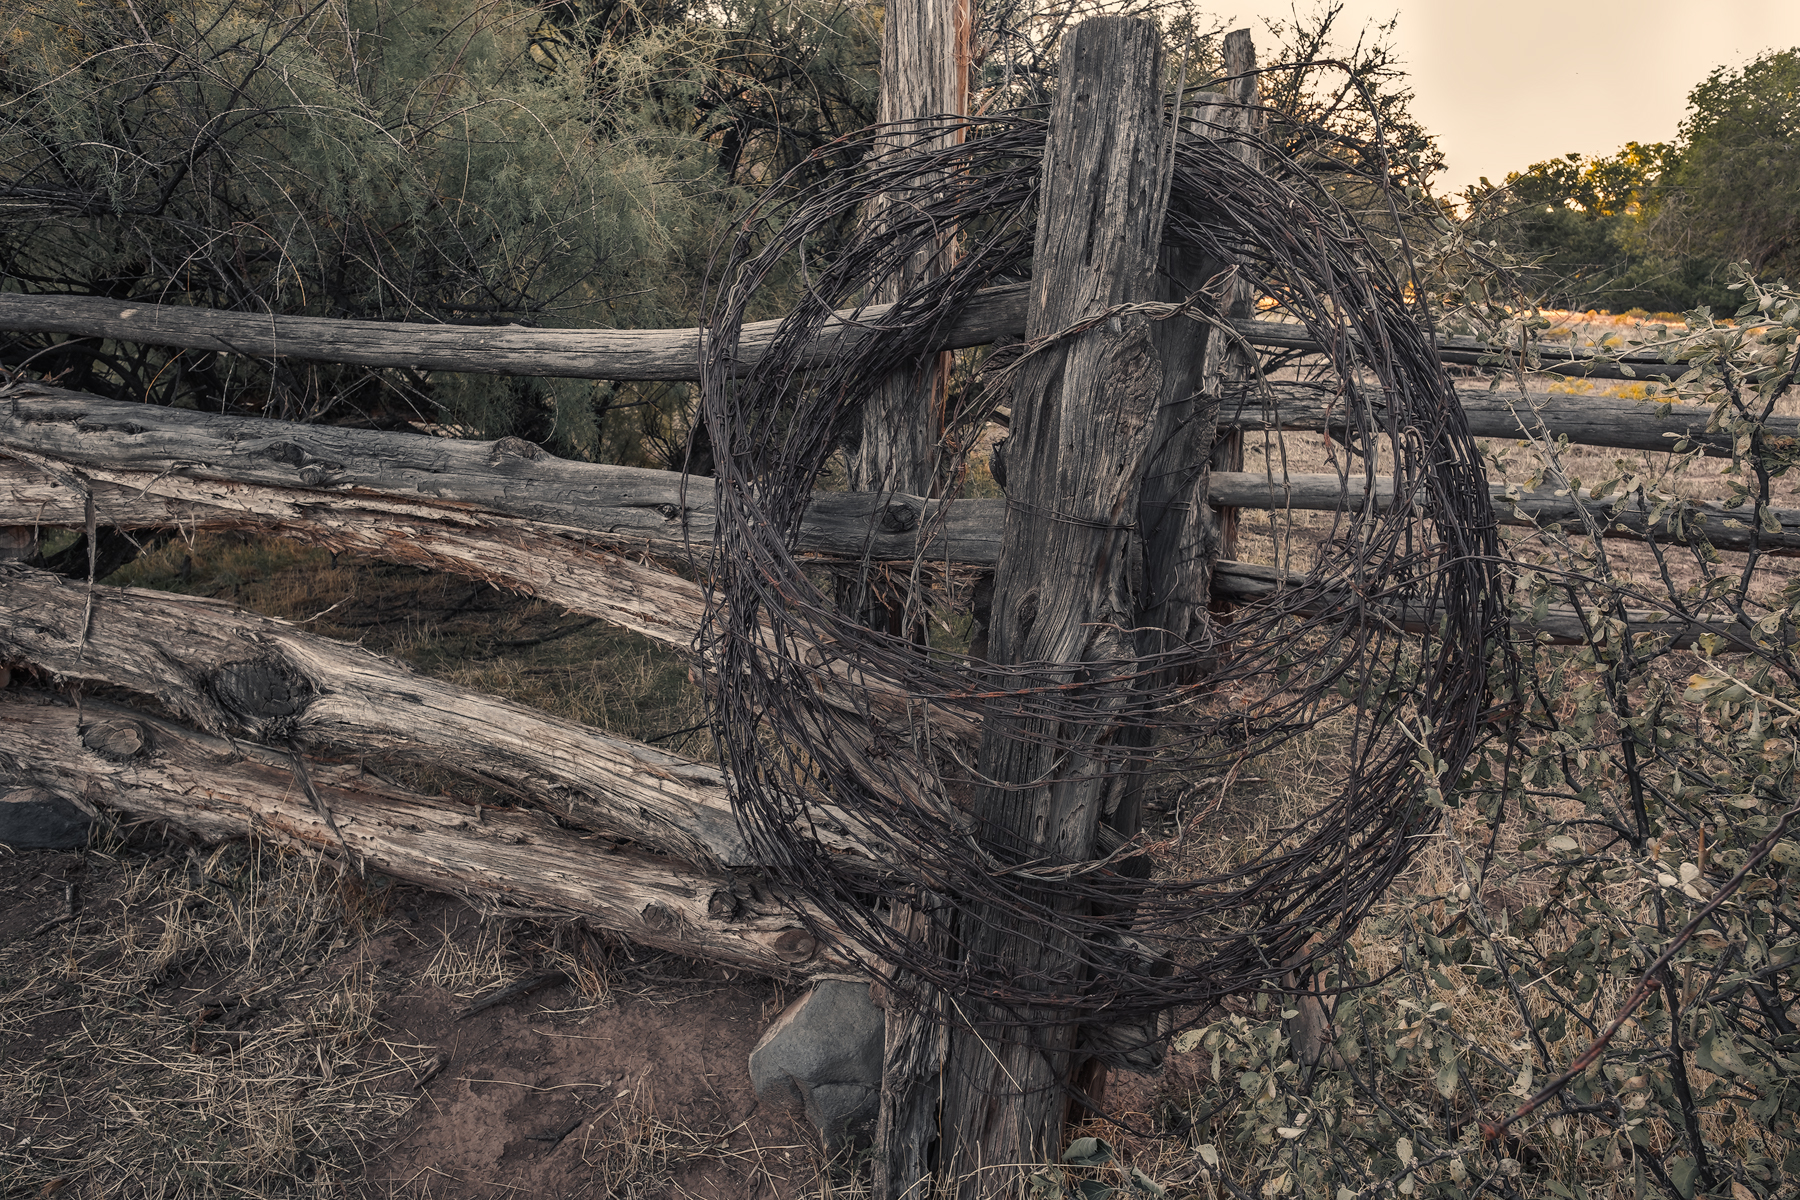 Barb Wire and Fence, Grafton Ghost Town, Grafton, UT.